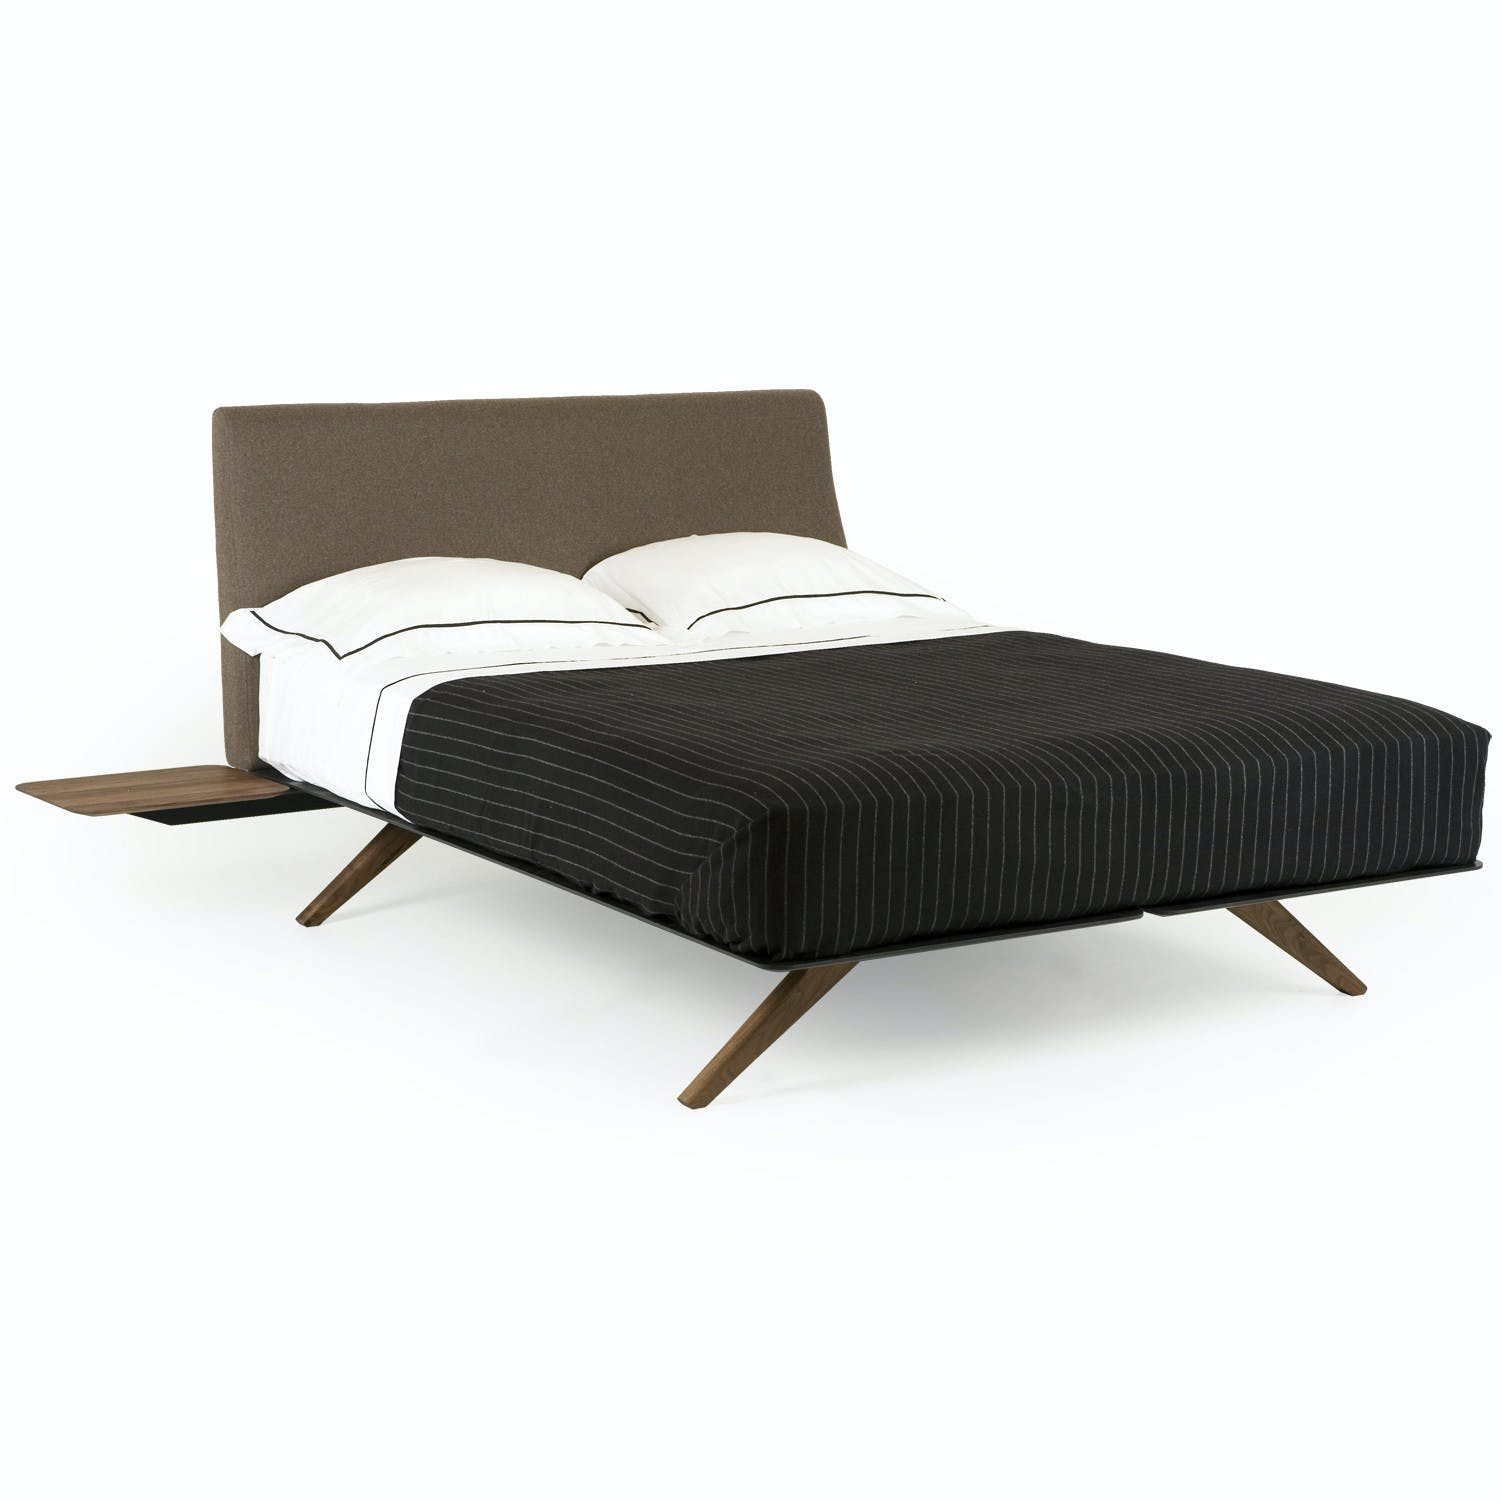 De La Espada Matthew Hilton Hepburn Bed Walnut Side Table Haute Living